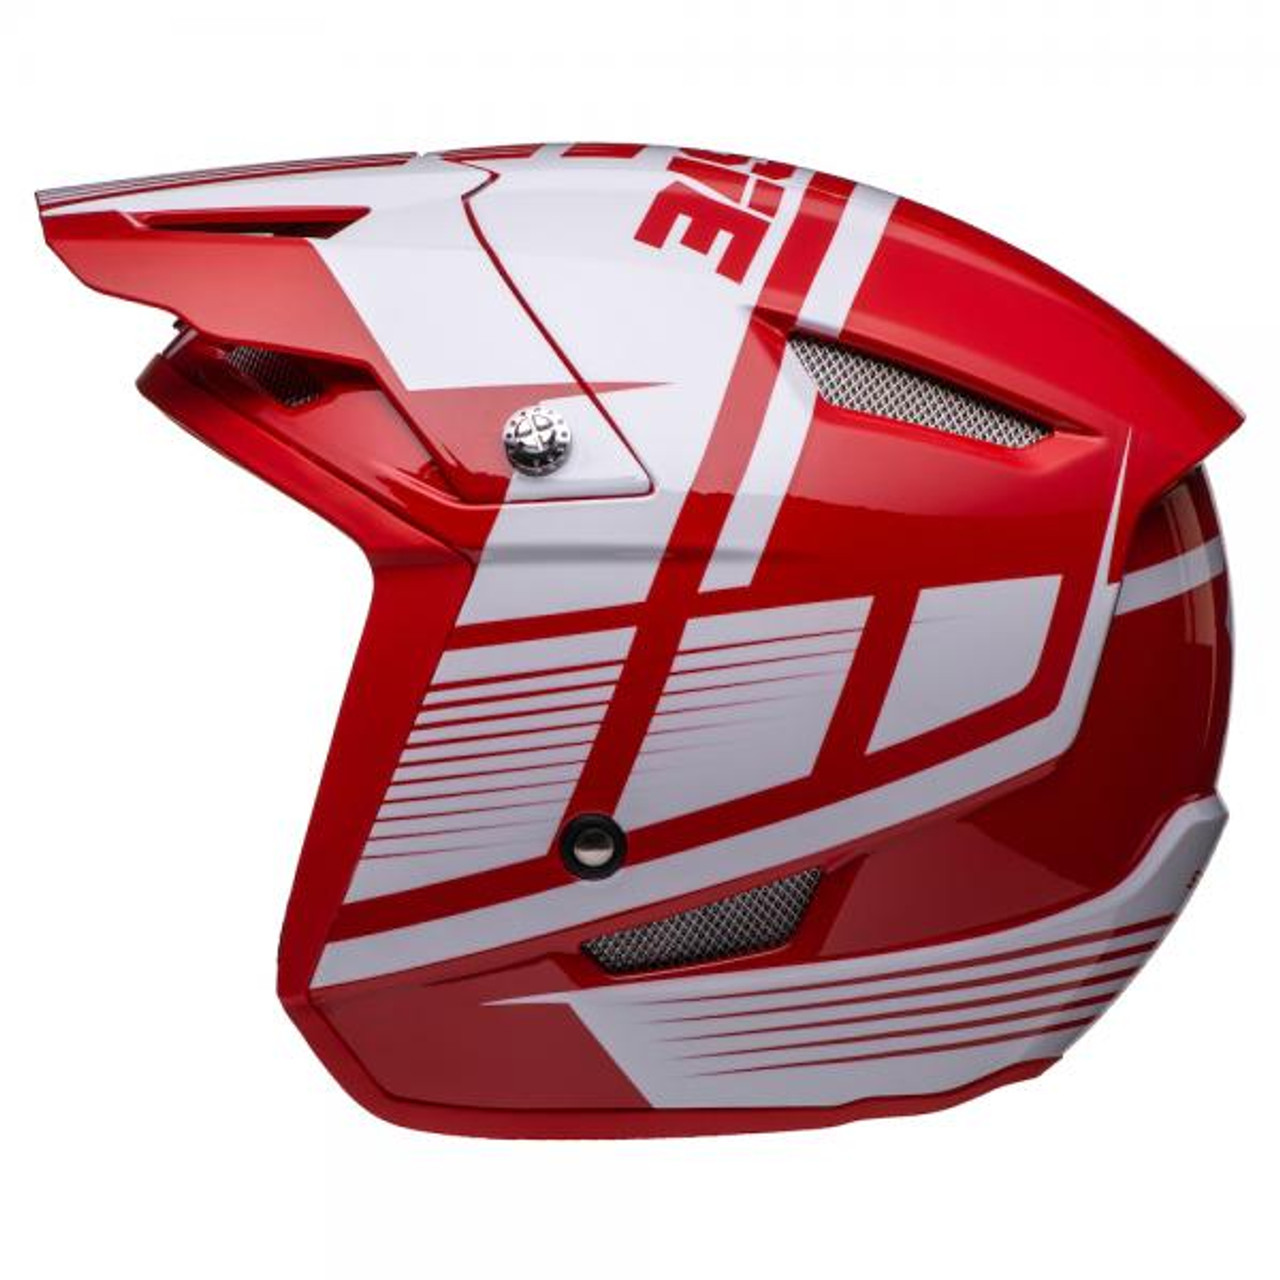 Helmet HT1 Struktur, red/ white